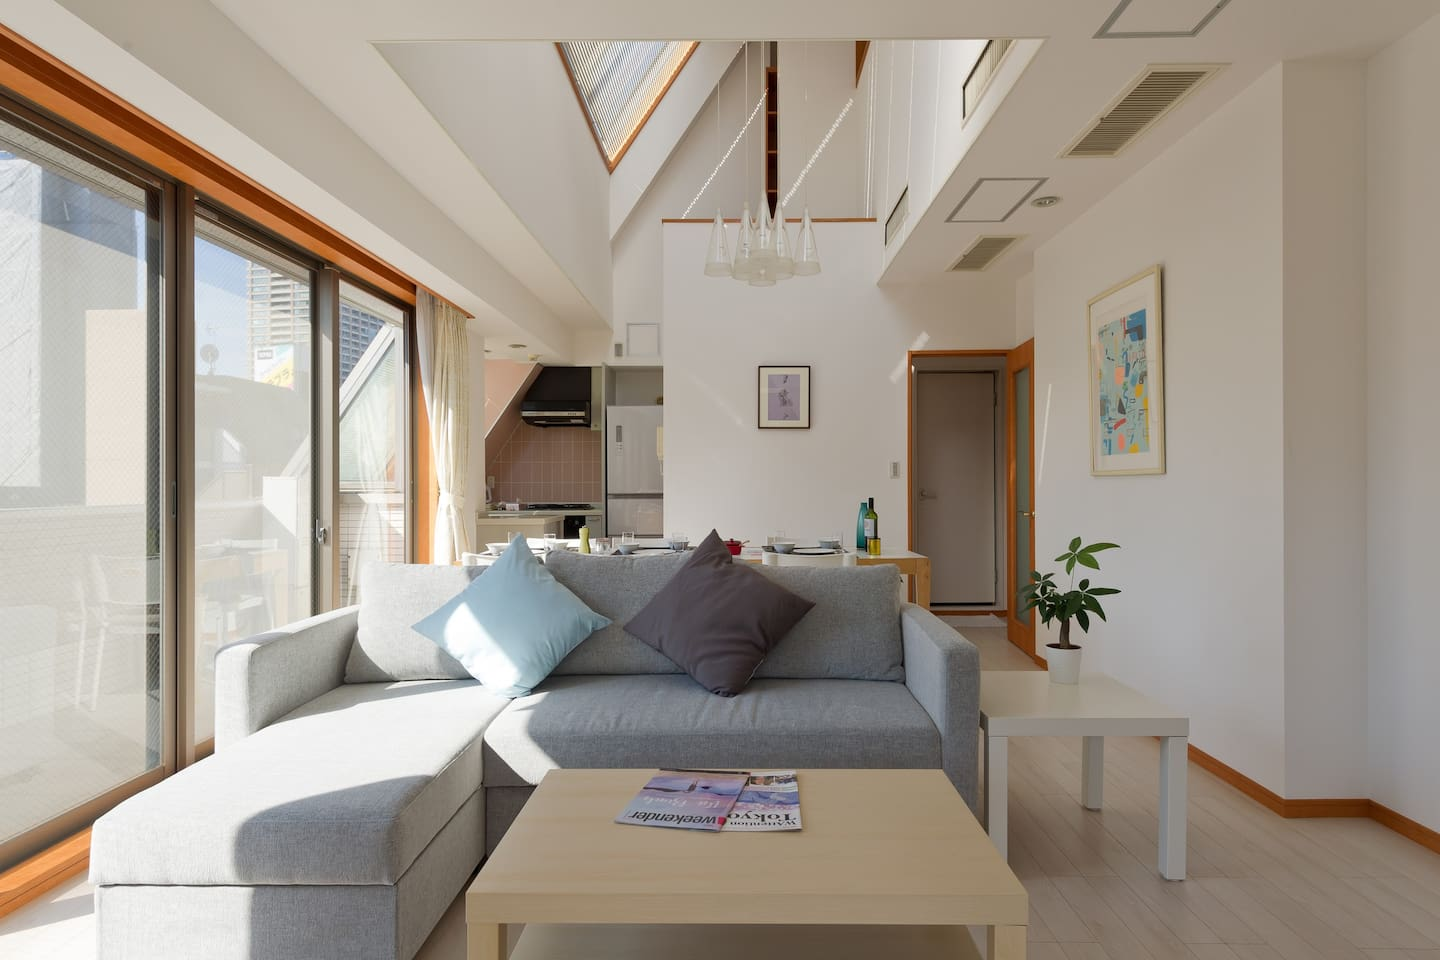 Vast 55㎡ Sunny Living Dining Room with Roof Garden with the view of Tokyo Tower. Dining table for 10 people. Easy to use Kitchen and bath room attached.  広々36畳 明るいリビングダイニング。広々ルーフガーデンから東京タワーが見えます。使いやすいキッチンと、ユニットバスが付属しています。